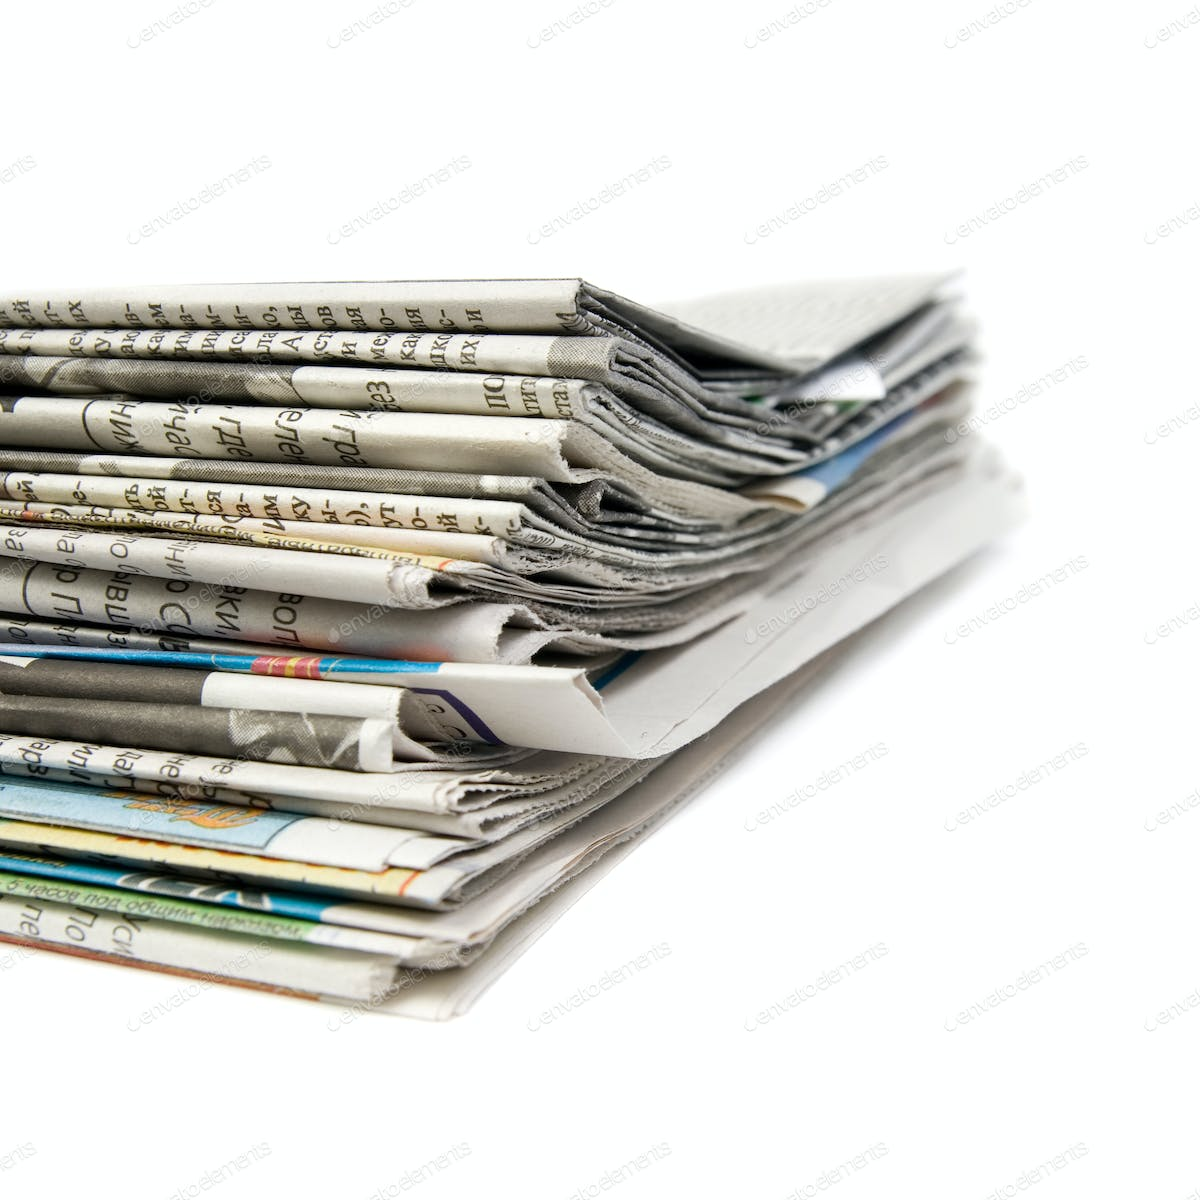 stack of newspapers photo by aleks_sg on envato elements